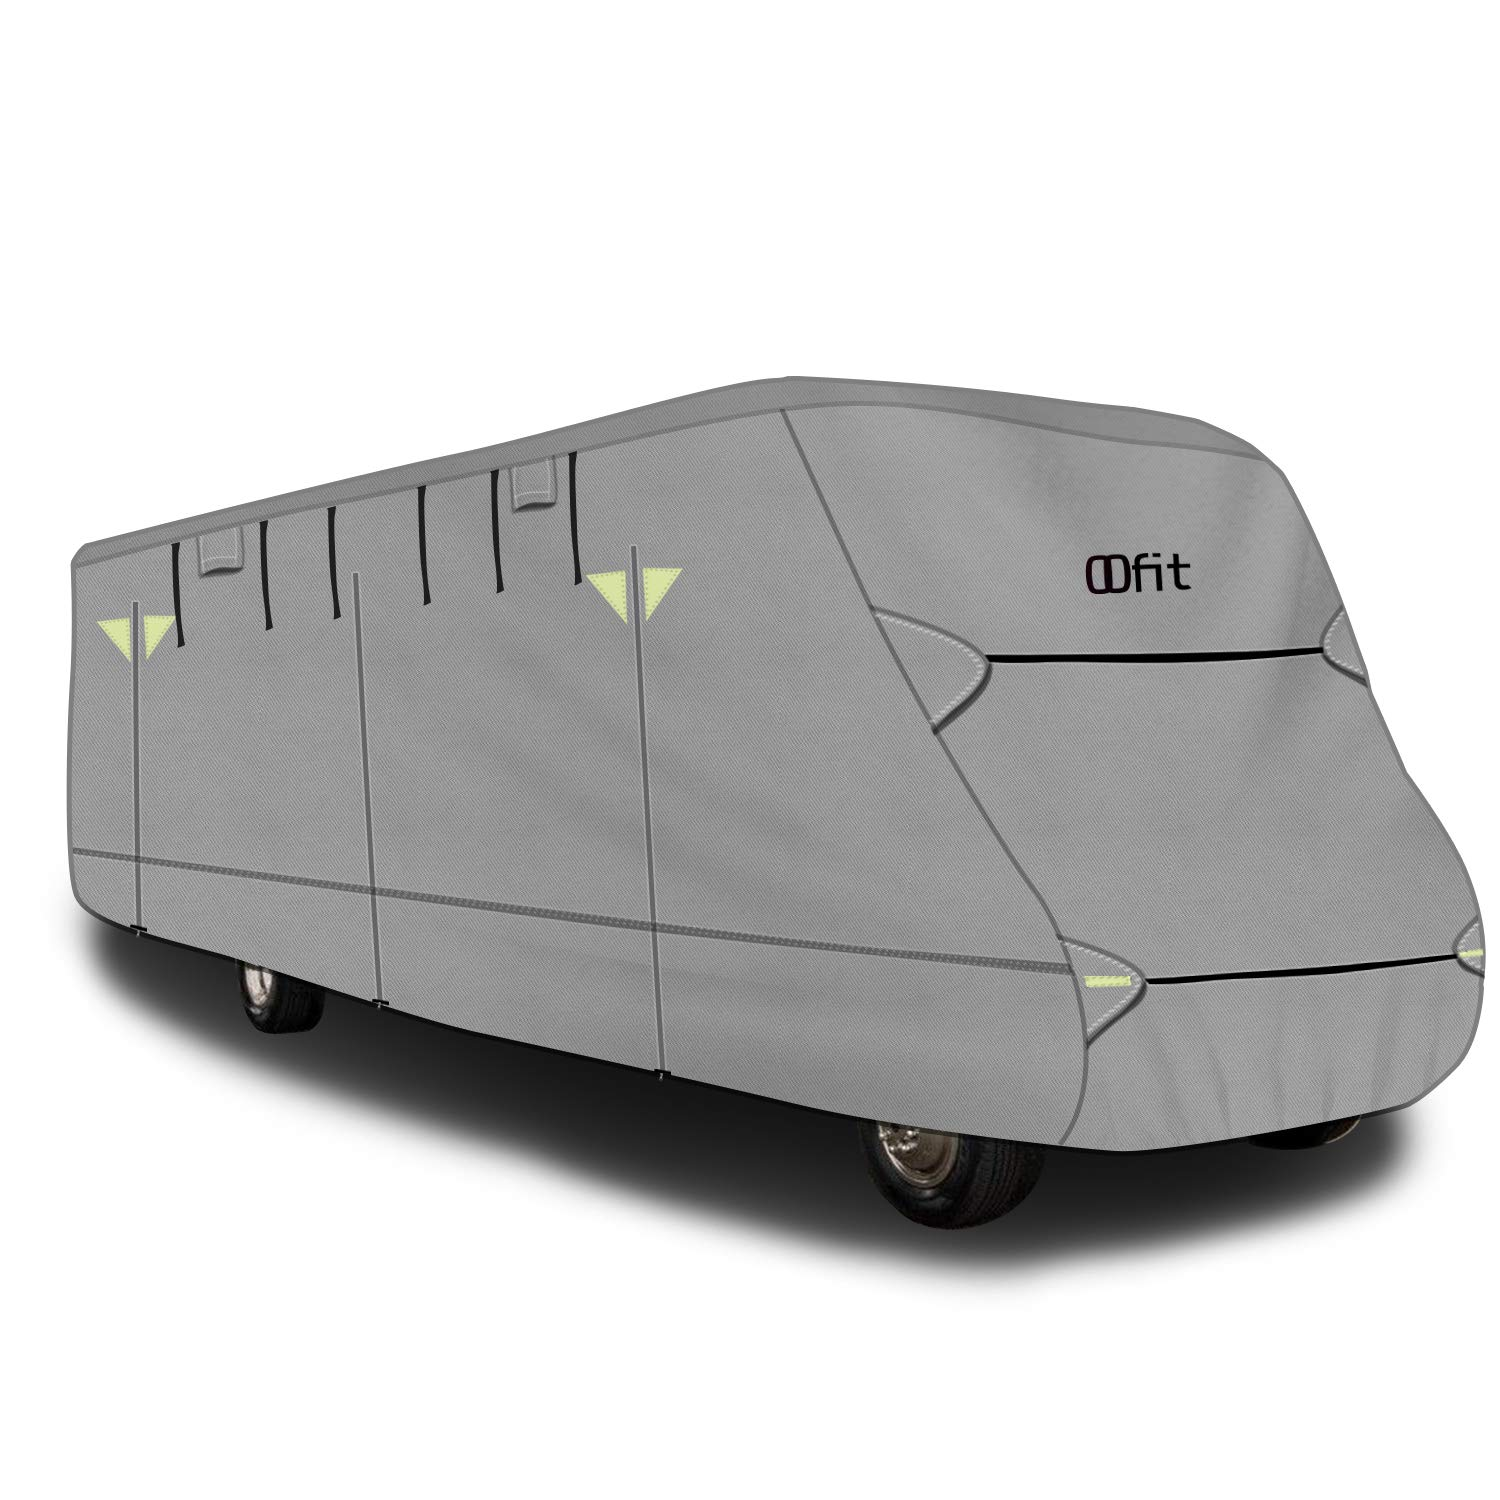 OOFIT Extra-Thick 4-ply Class C Motorhome RV Cover, Fits 26' - 29' RVs, Breathable Anti-UV Motorhome Cover with Adhesive Repair Patch & Storage Bag by OOFIT